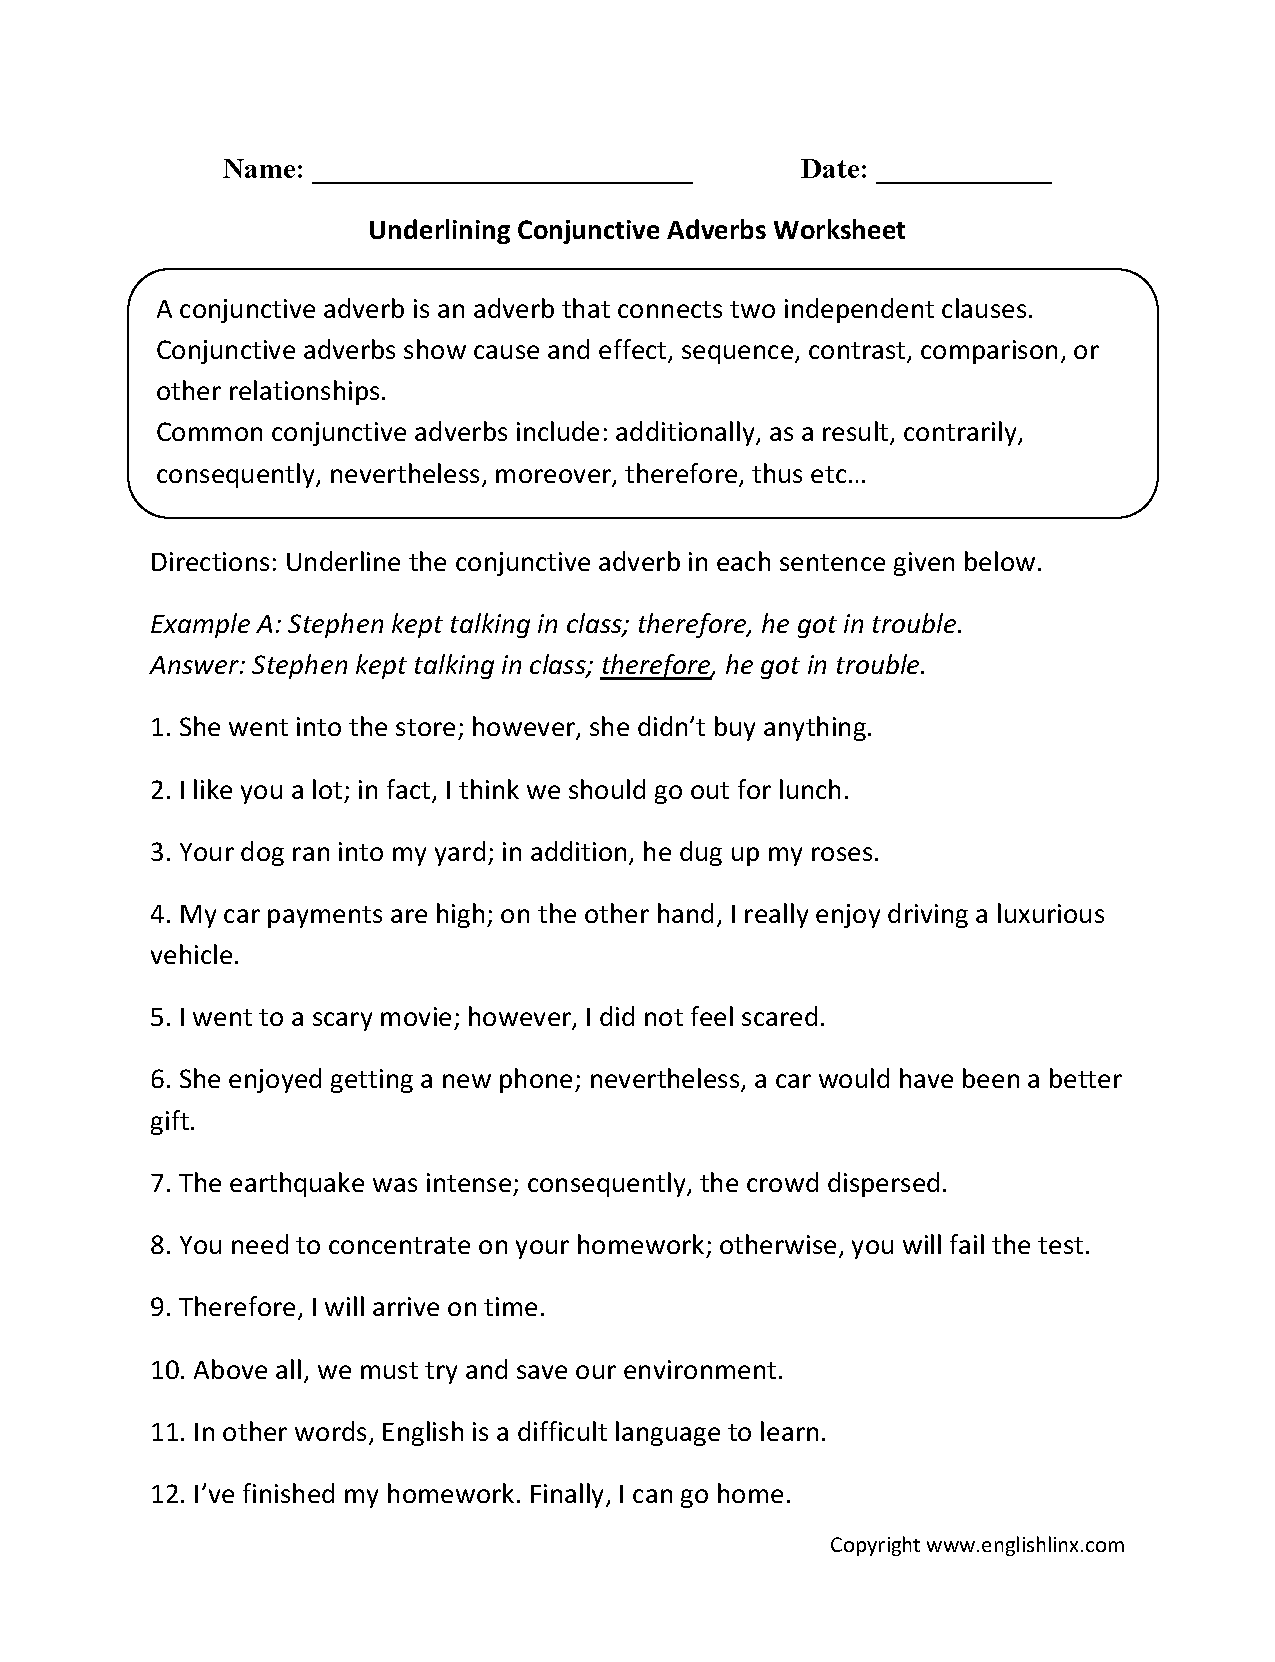 Proatmealus  Winsome Englishlinxcom  Conjunctions Worksheets With Licious Worksheet With Appealing Math Worksheet Division Also Compare And Contrast Nd Grade Worksheets In Addition Rd Grade Sentence Structure Worksheets And Alphabet Symmetry Worksheet As Well As Good Character Worksheets Additionally Ratio Word Problems Worksheets Th Grade From Englishlinxcom With Proatmealus  Licious Englishlinxcom  Conjunctions Worksheets With Appealing Worksheet And Winsome Math Worksheet Division Also Compare And Contrast Nd Grade Worksheets In Addition Rd Grade Sentence Structure Worksheets From Englishlinxcom